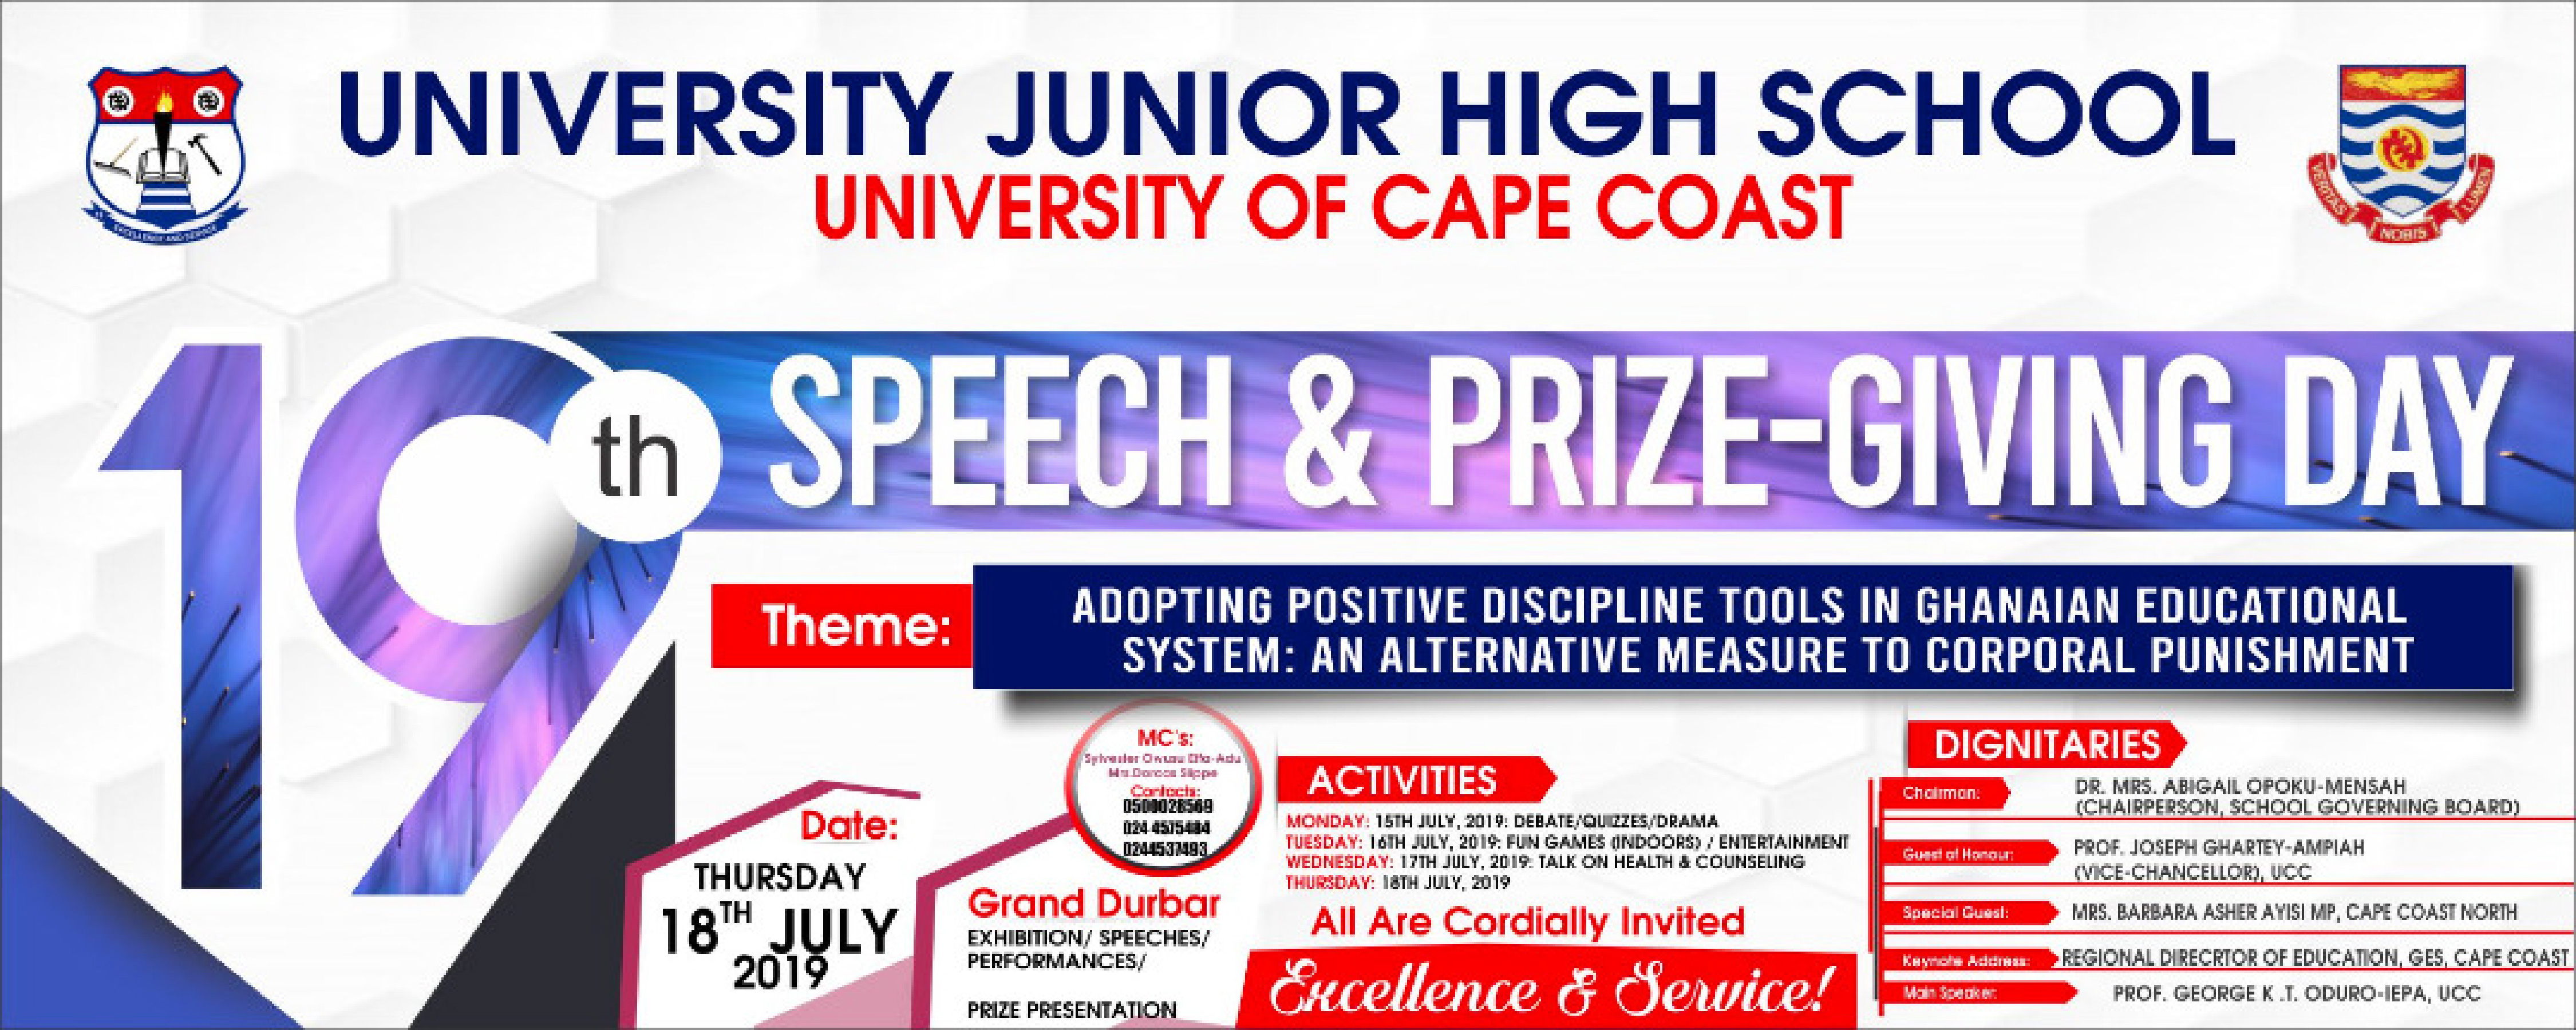 19th Speech and Prize-Giving Day